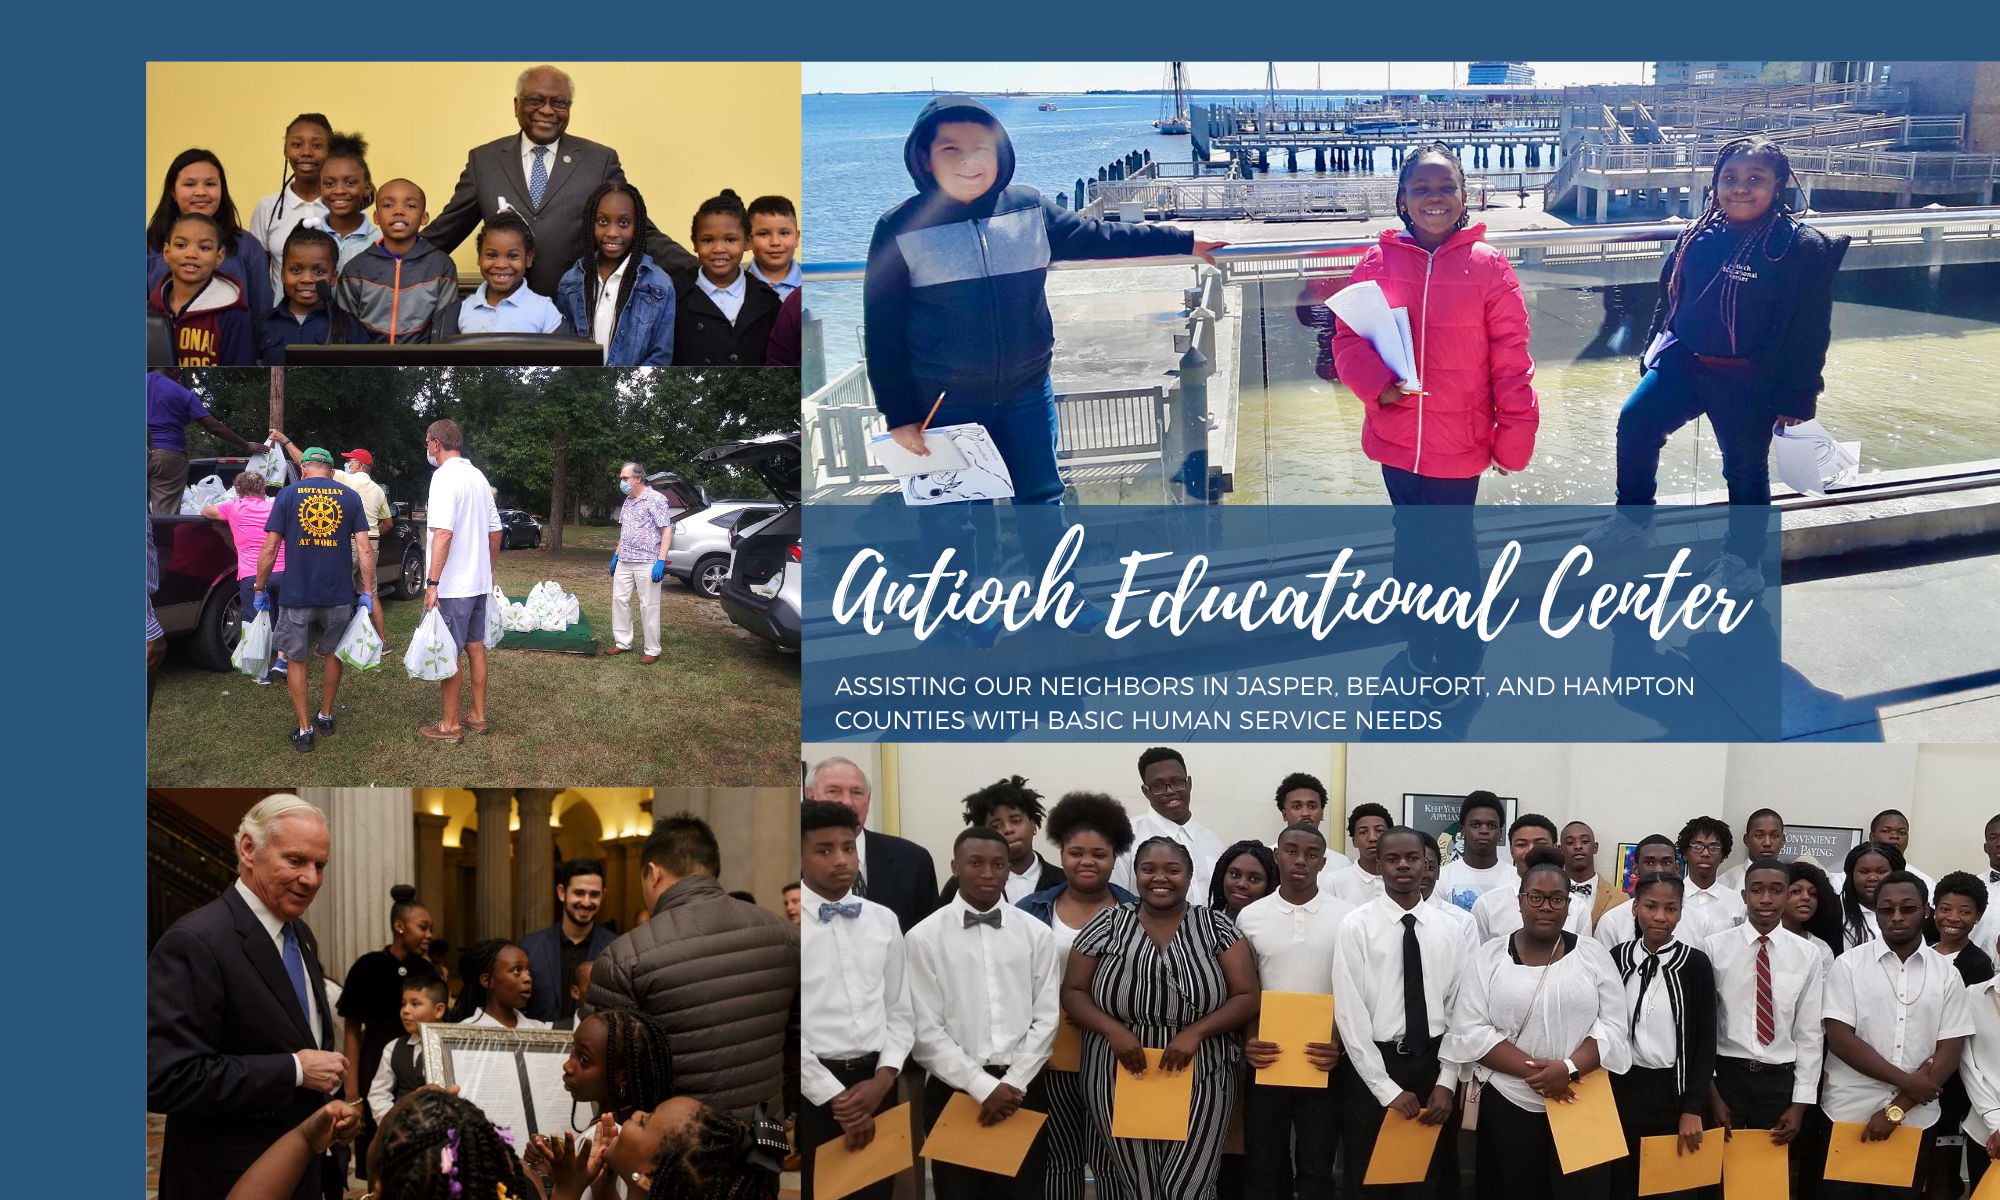 Antioch Educational Center